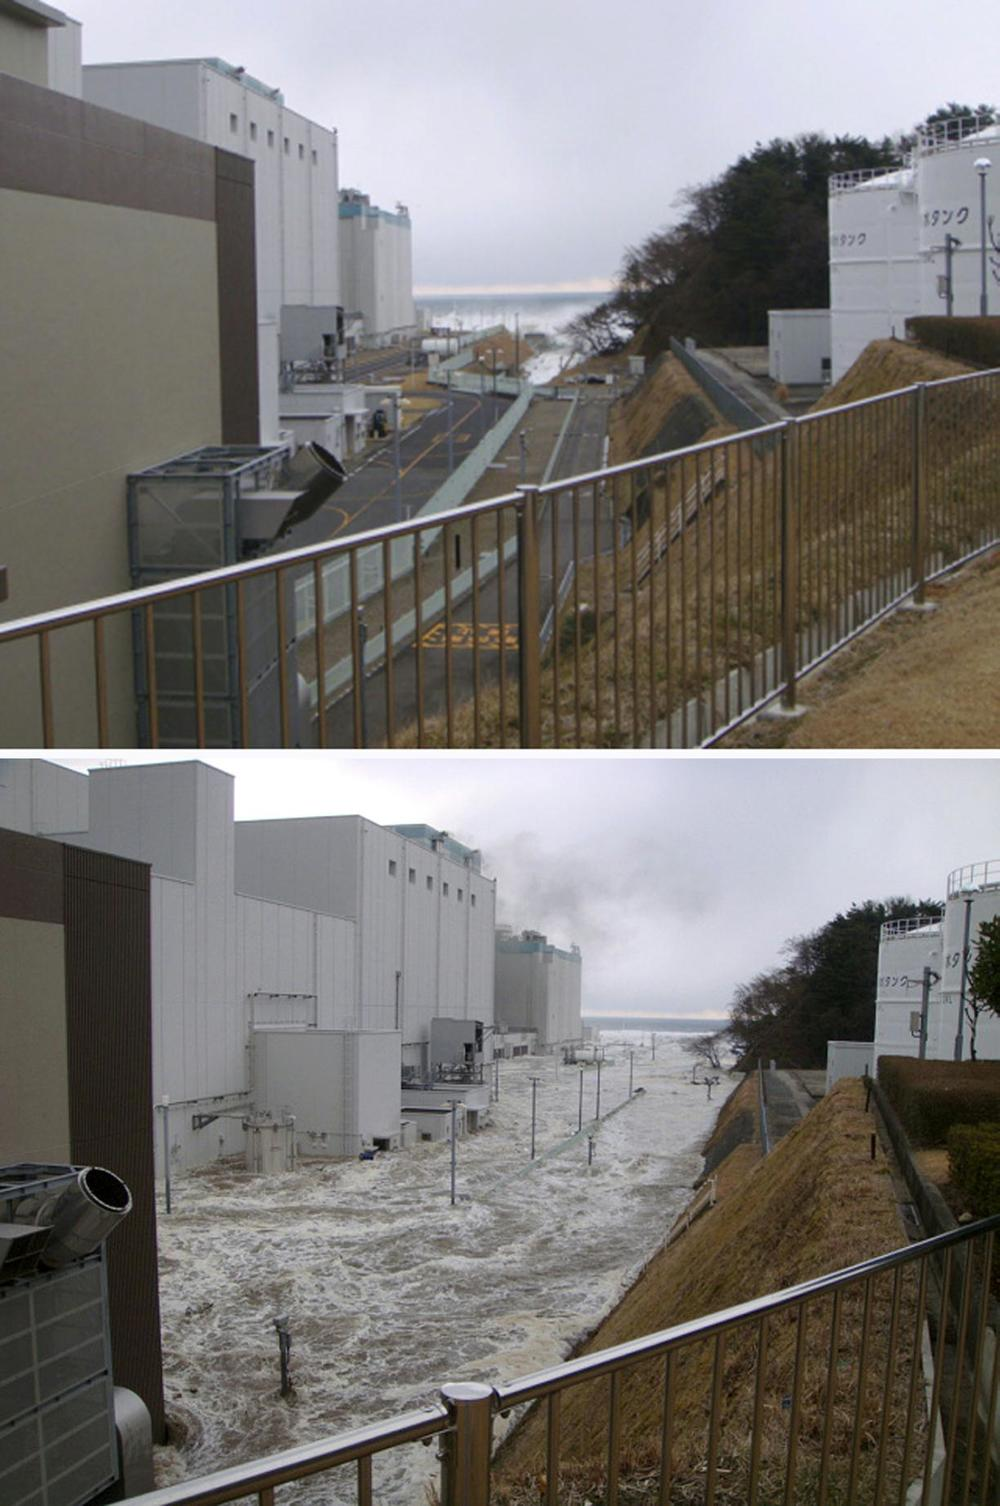 water rushing into the Fukushima nuclear reactor during the March 11 tsunami b.jpg